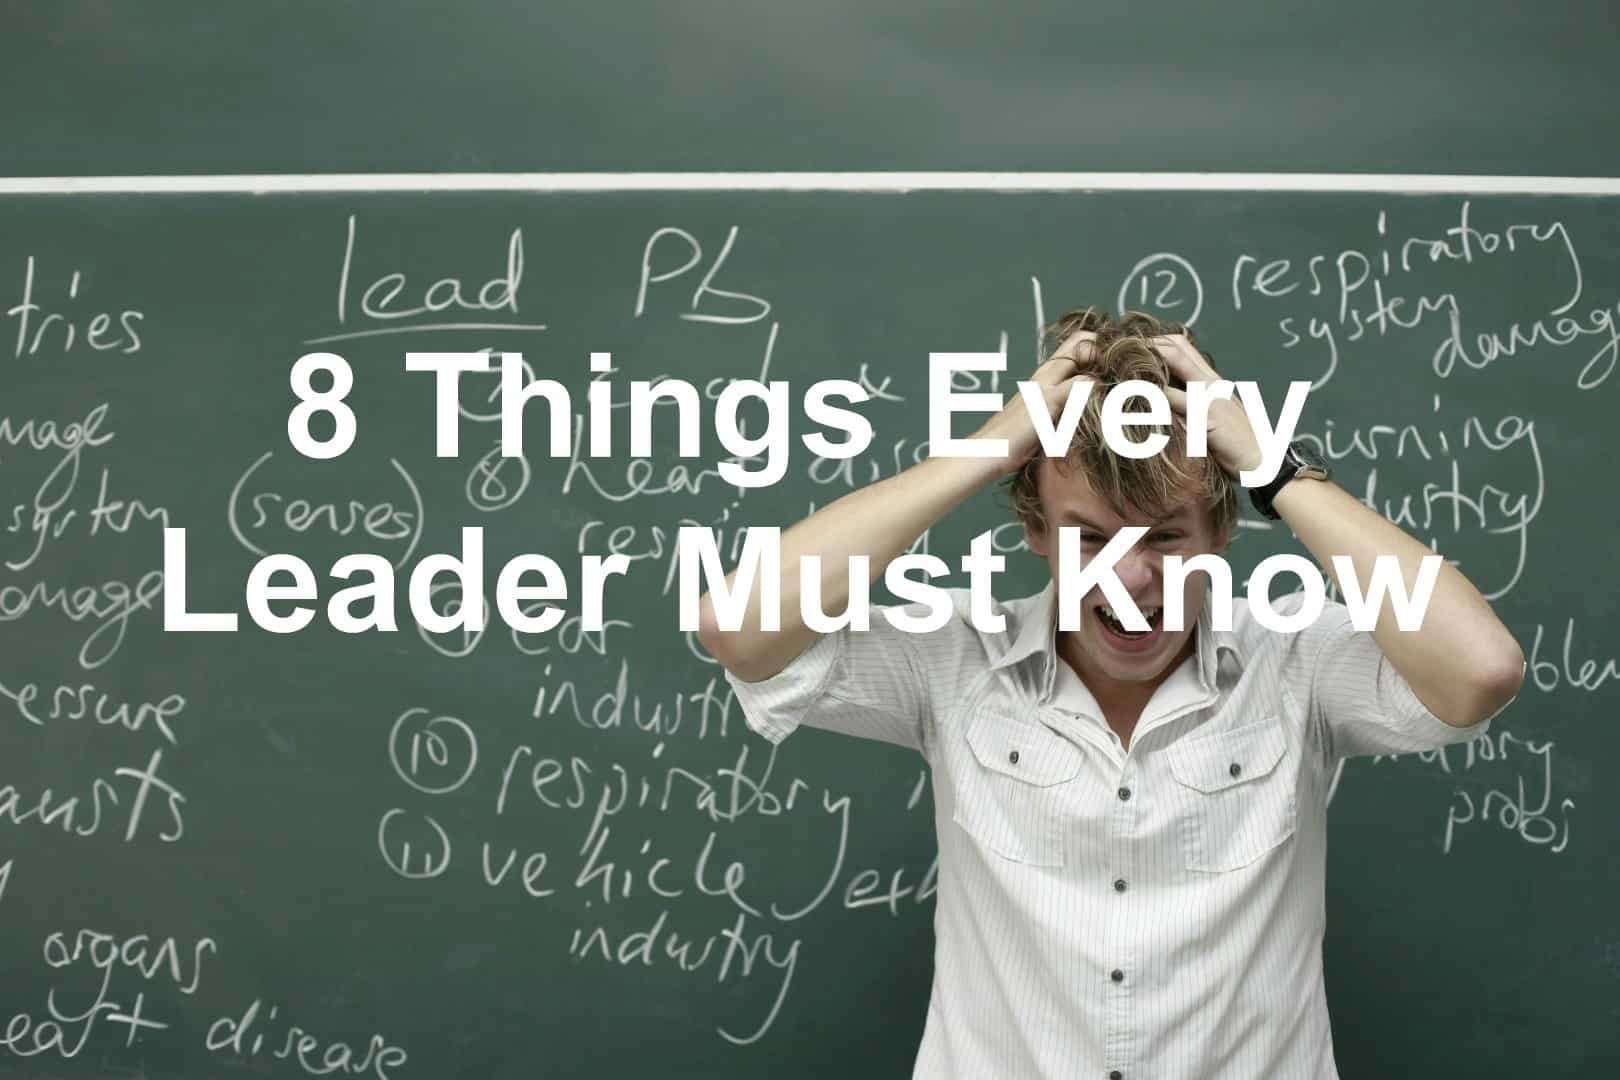 Do you know these things leaders must know?